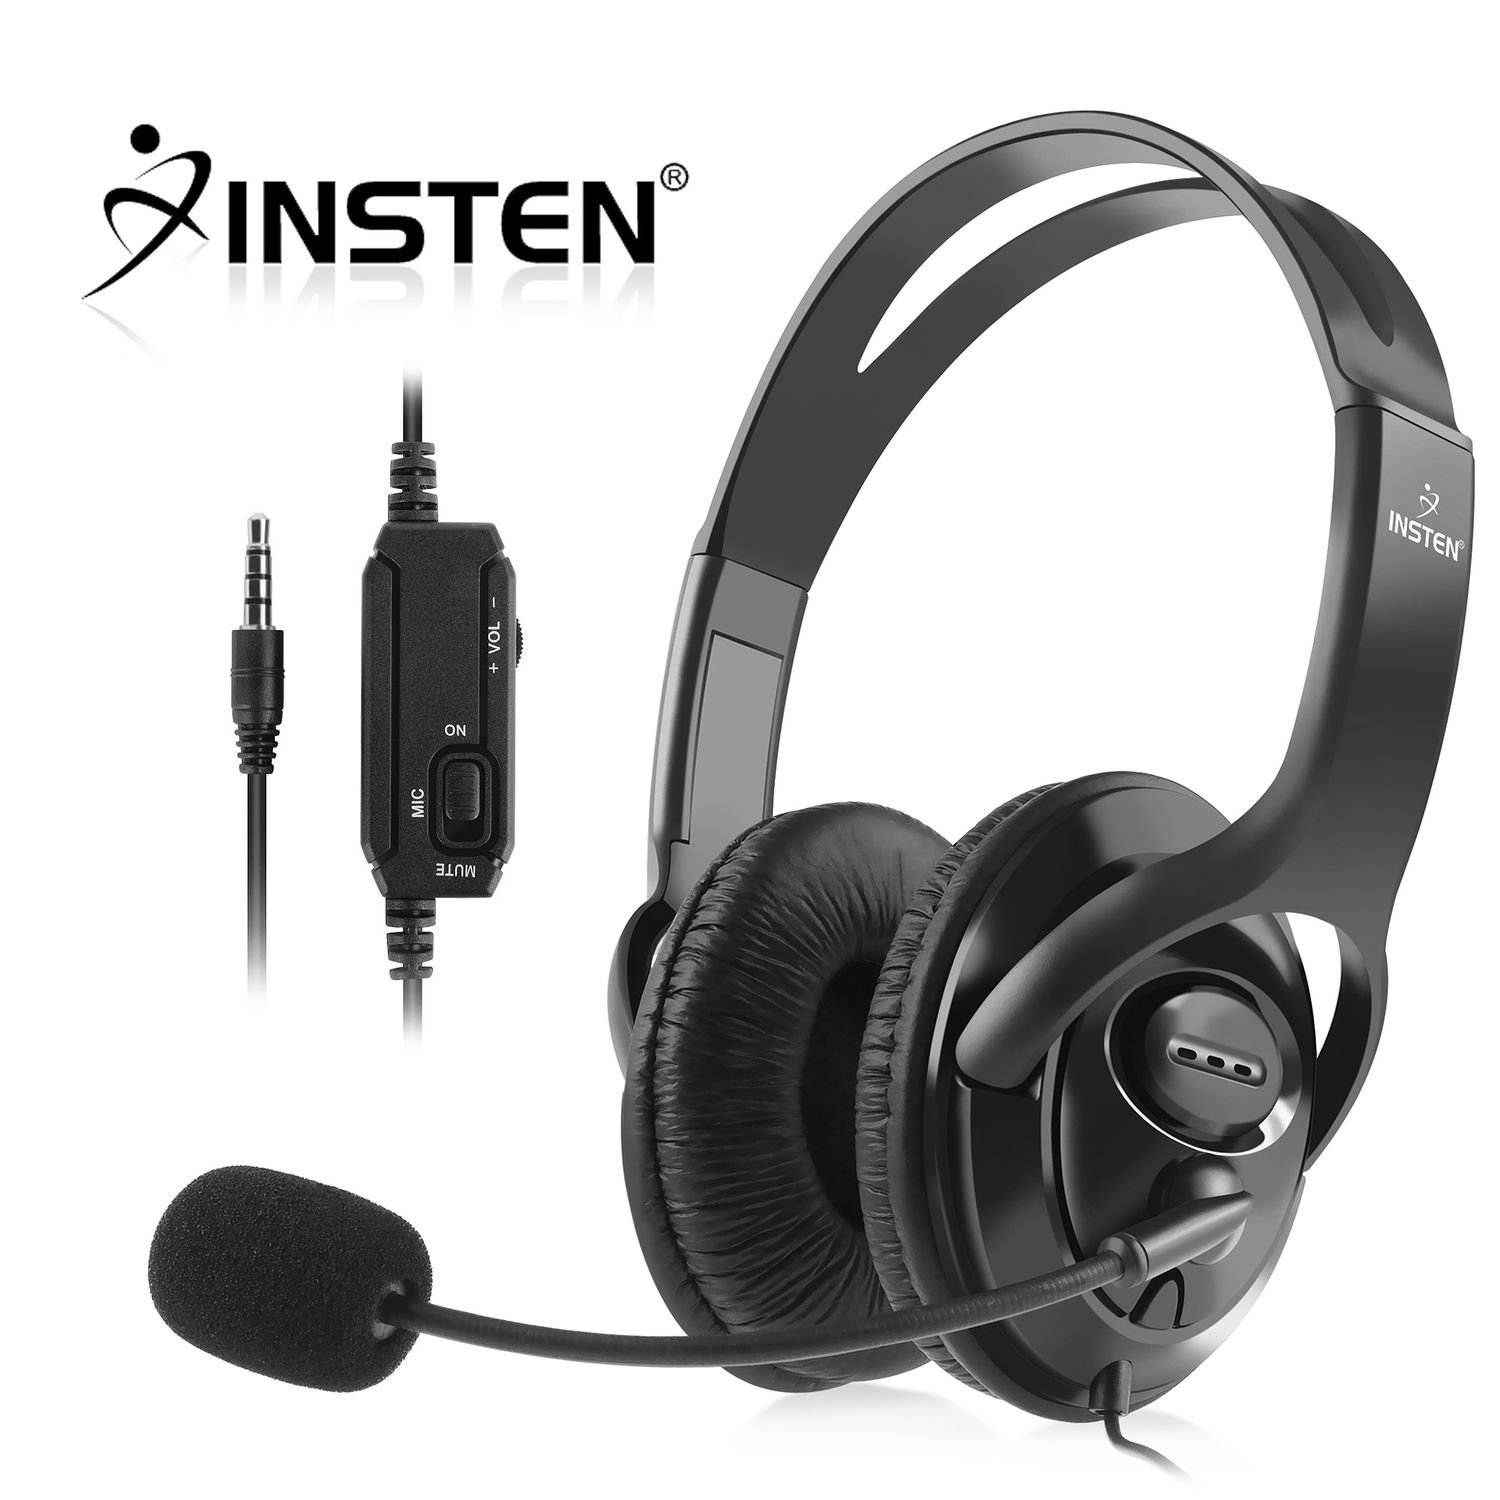 Insten Headset with Mic compatible with Sony PlayStaion 4, Black by INSTEN